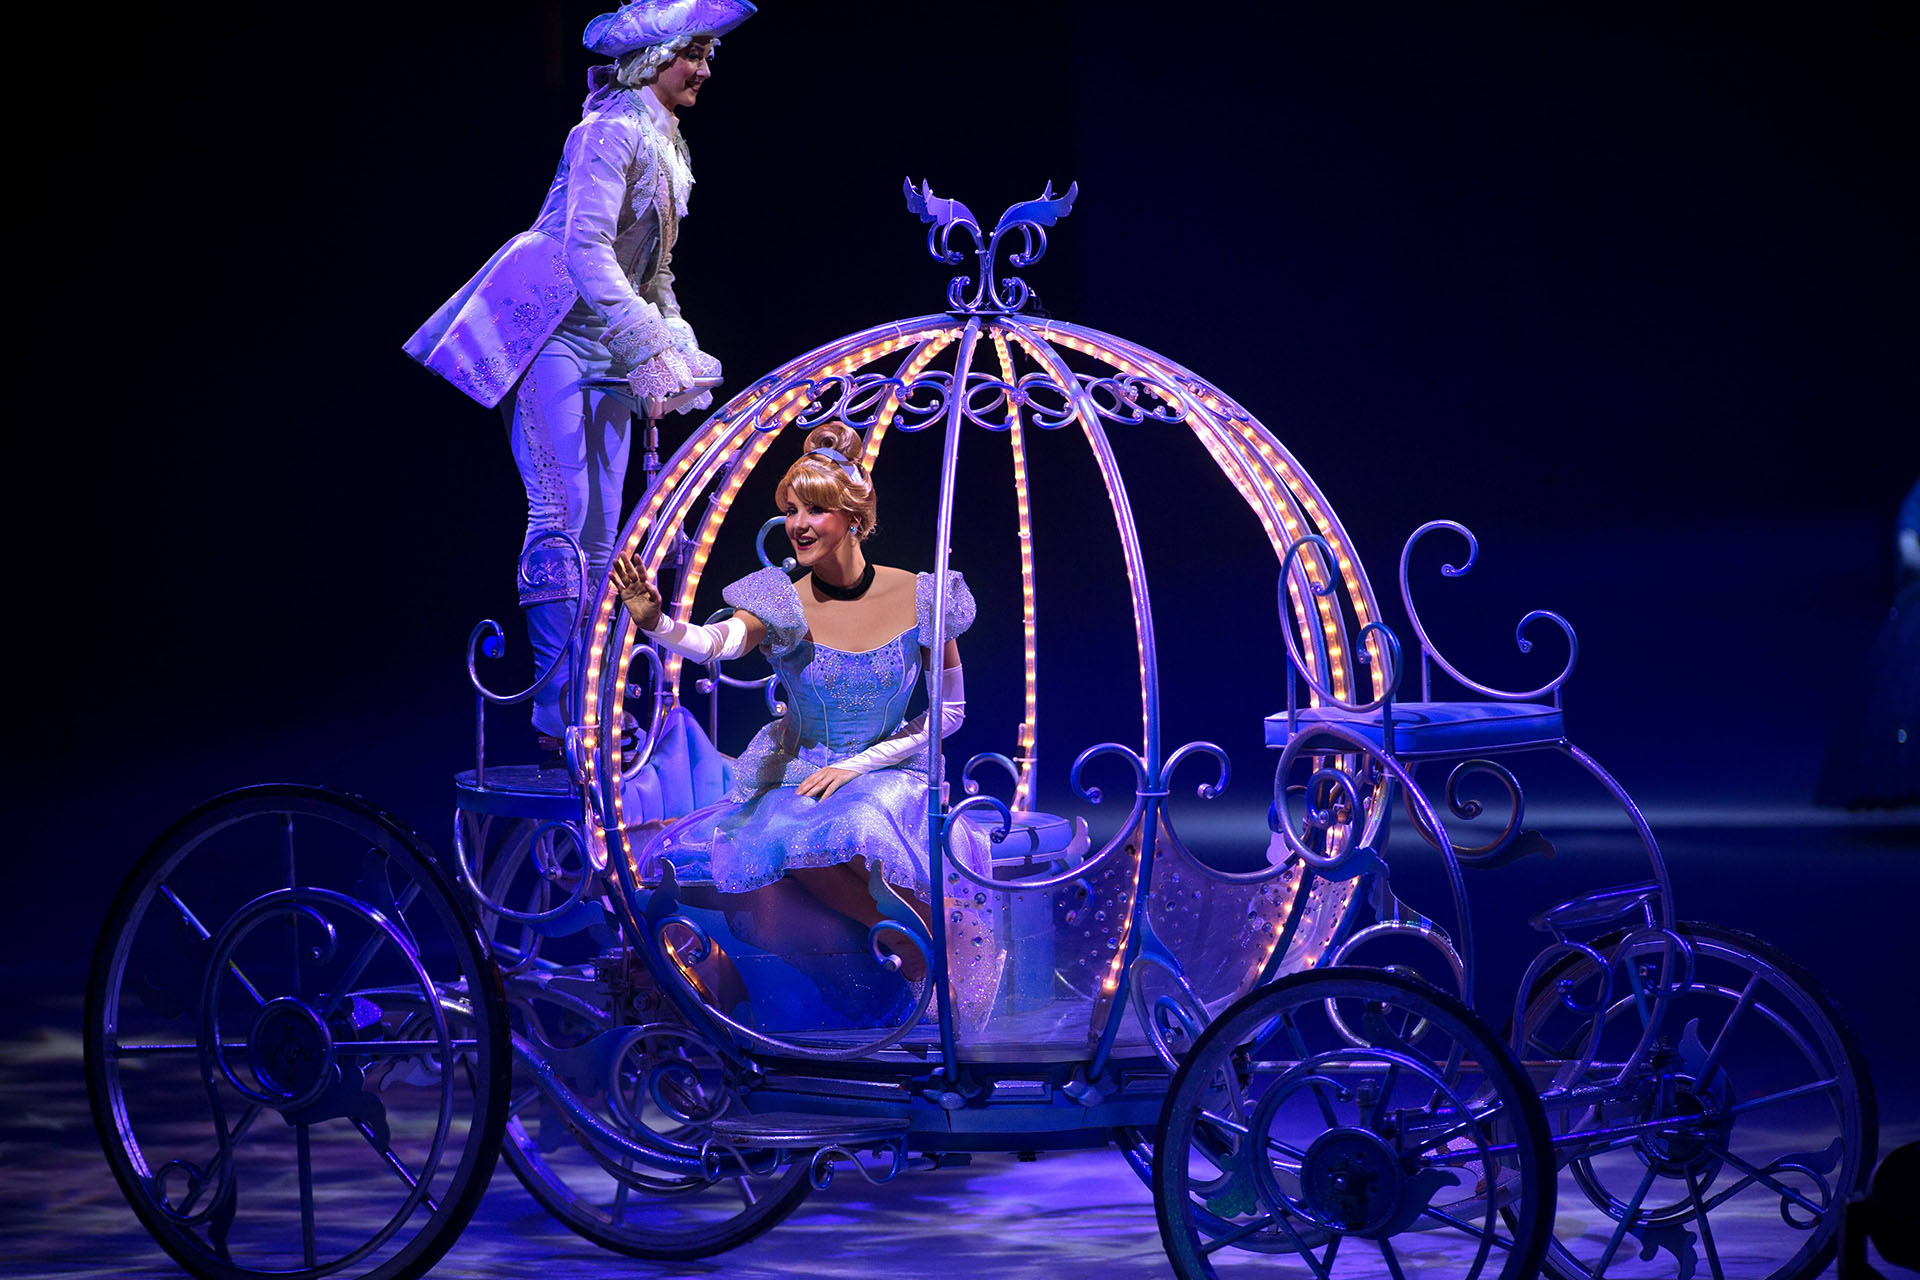 Cinderella rides in her magical pumpkin carriage